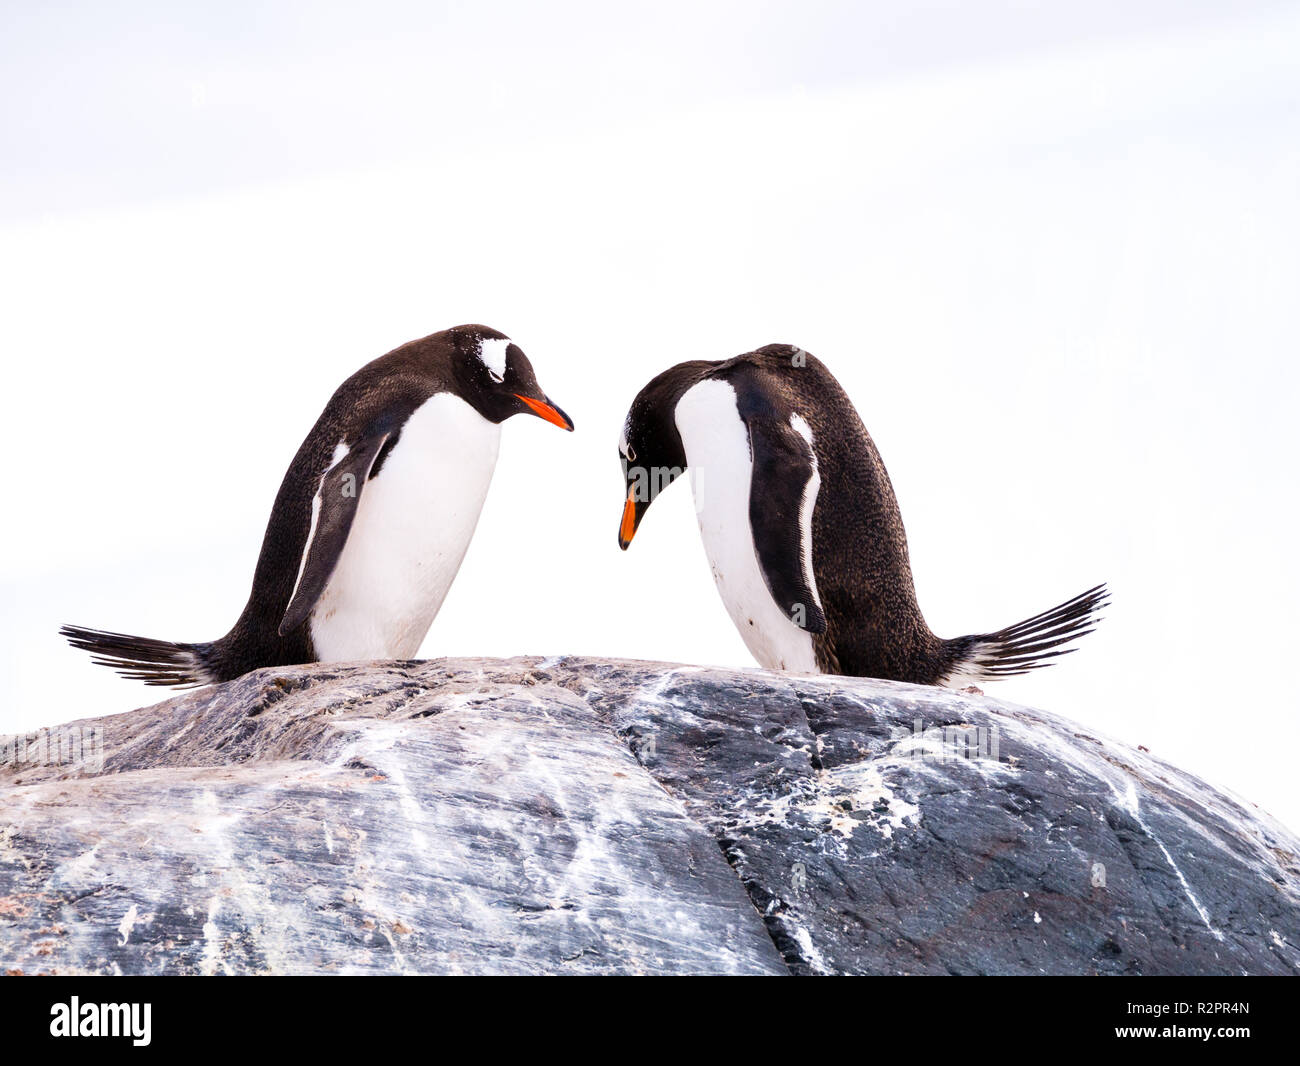 Pair of Gentoo penguins, Pygoscelis papua, standing side by side on rock and bowing, Mikkelsen Harbour, Trinity Island, Antarctic Peninsula, Antarctic - Stock Image